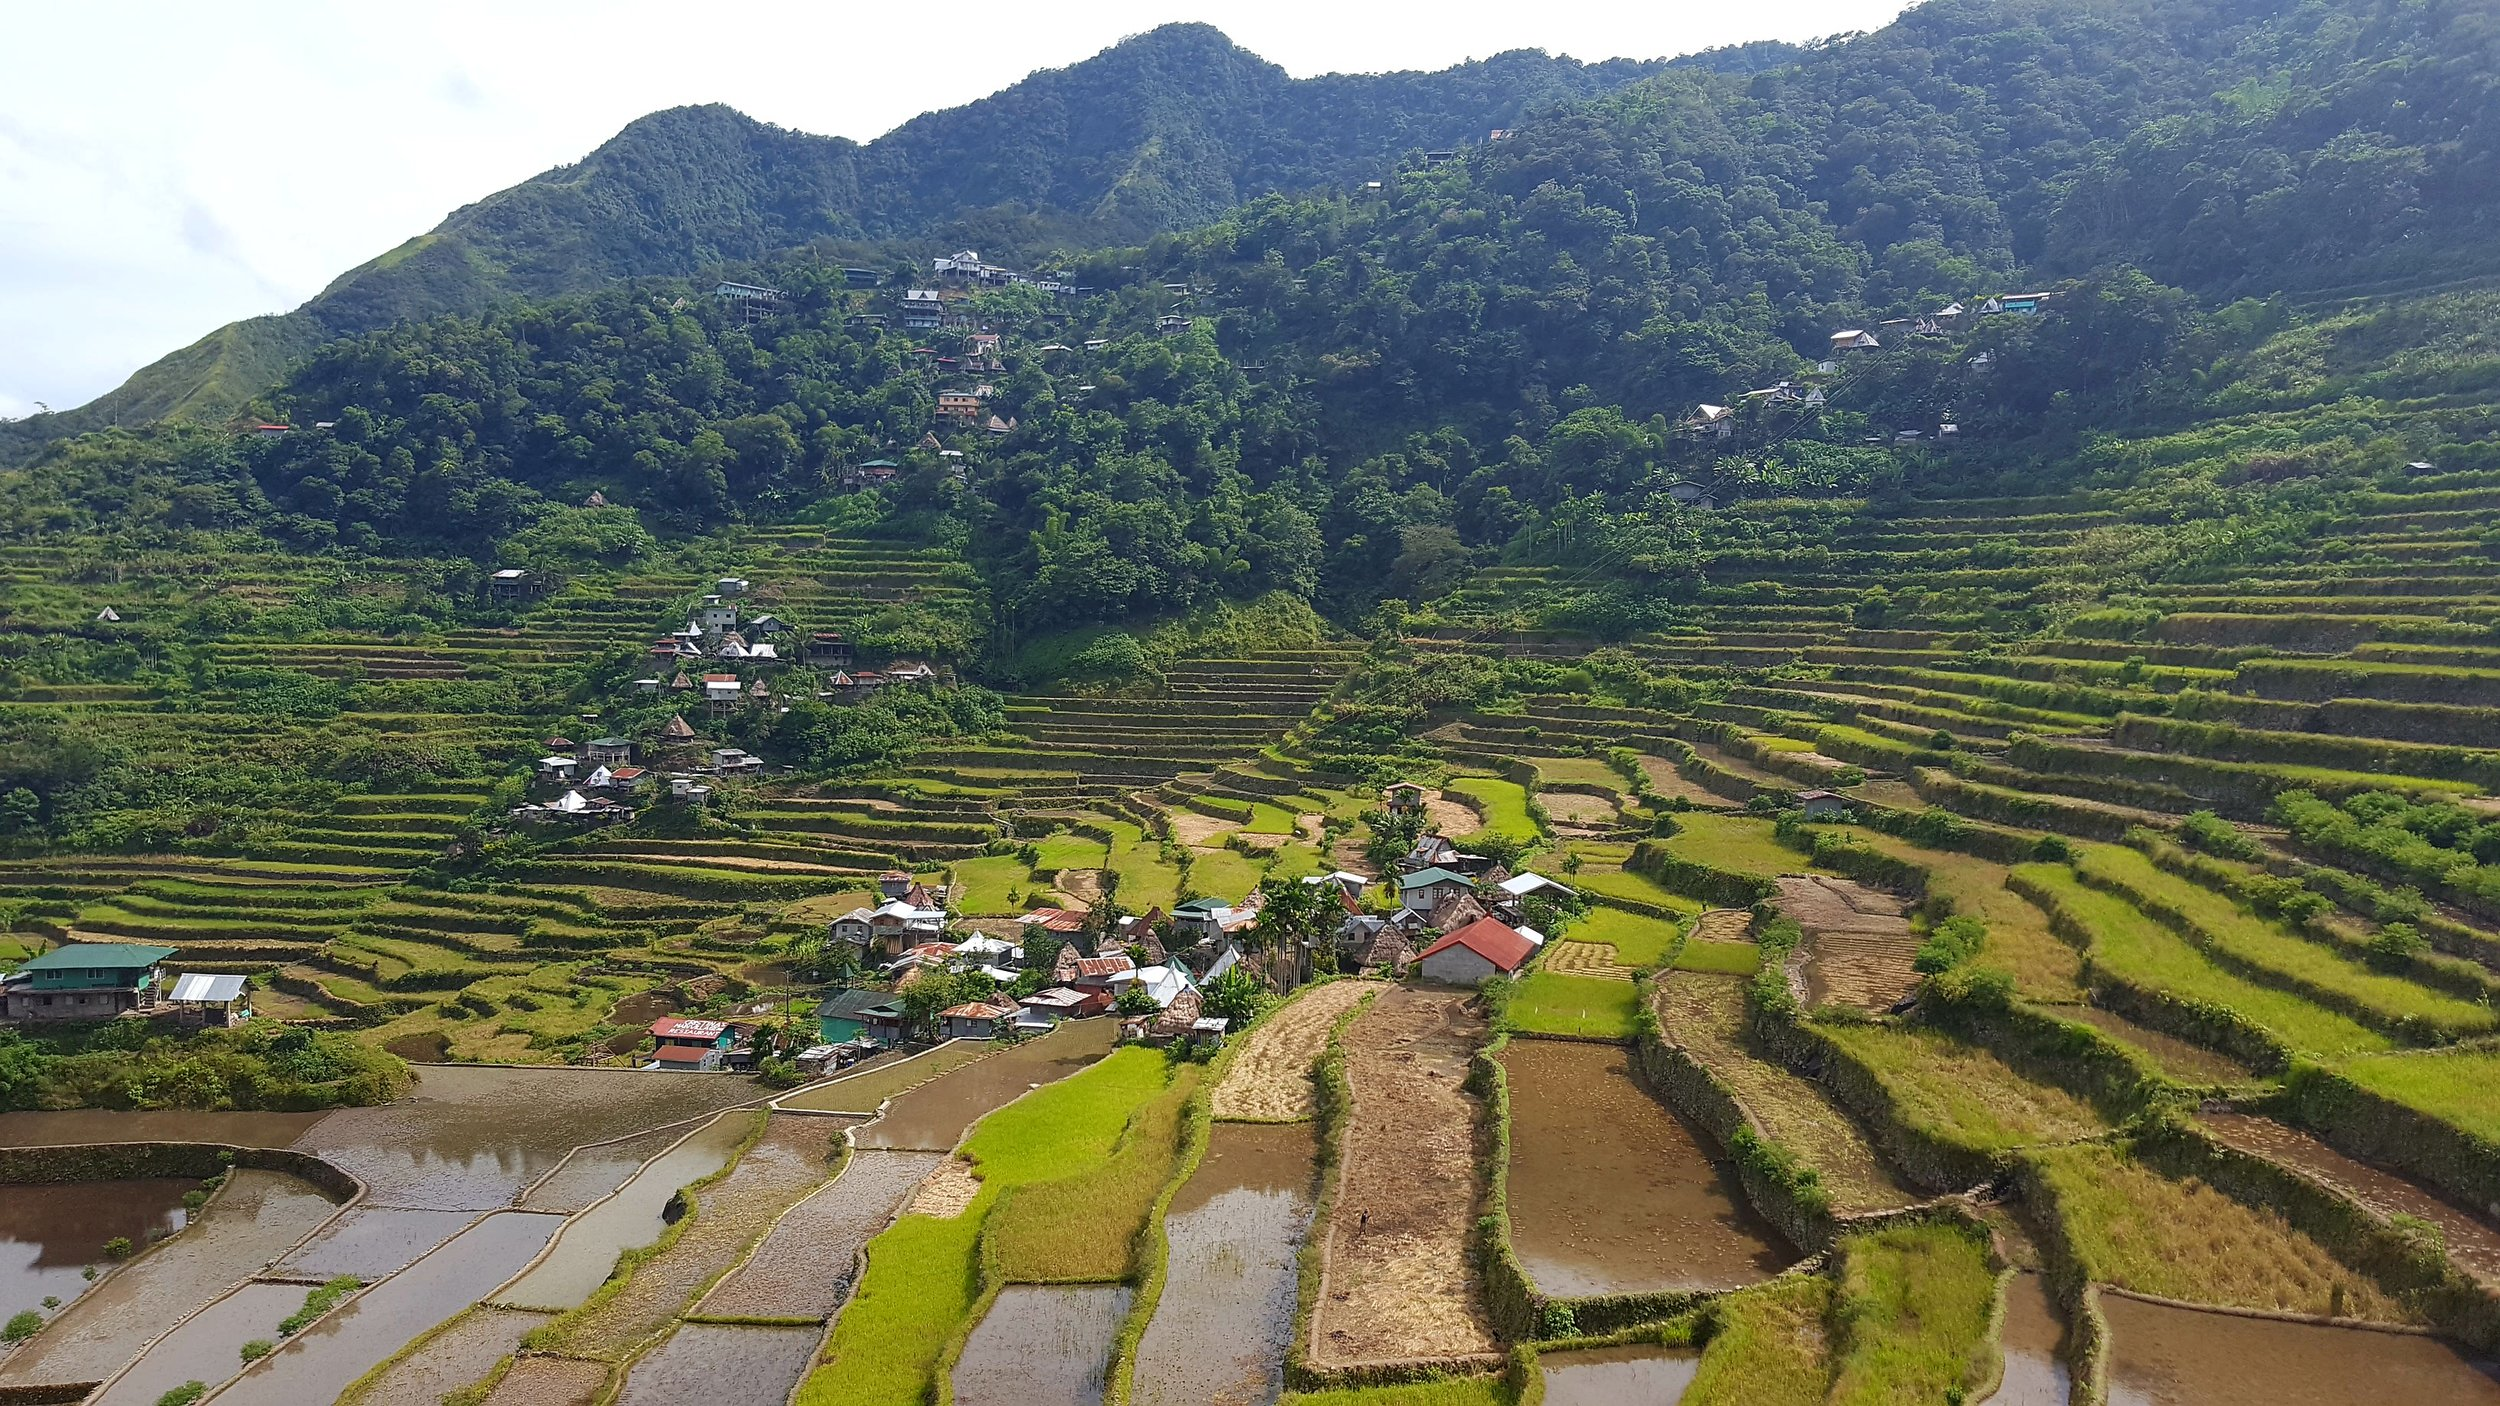 Banaue and Batad were my first stops when I backpacked the Philippines